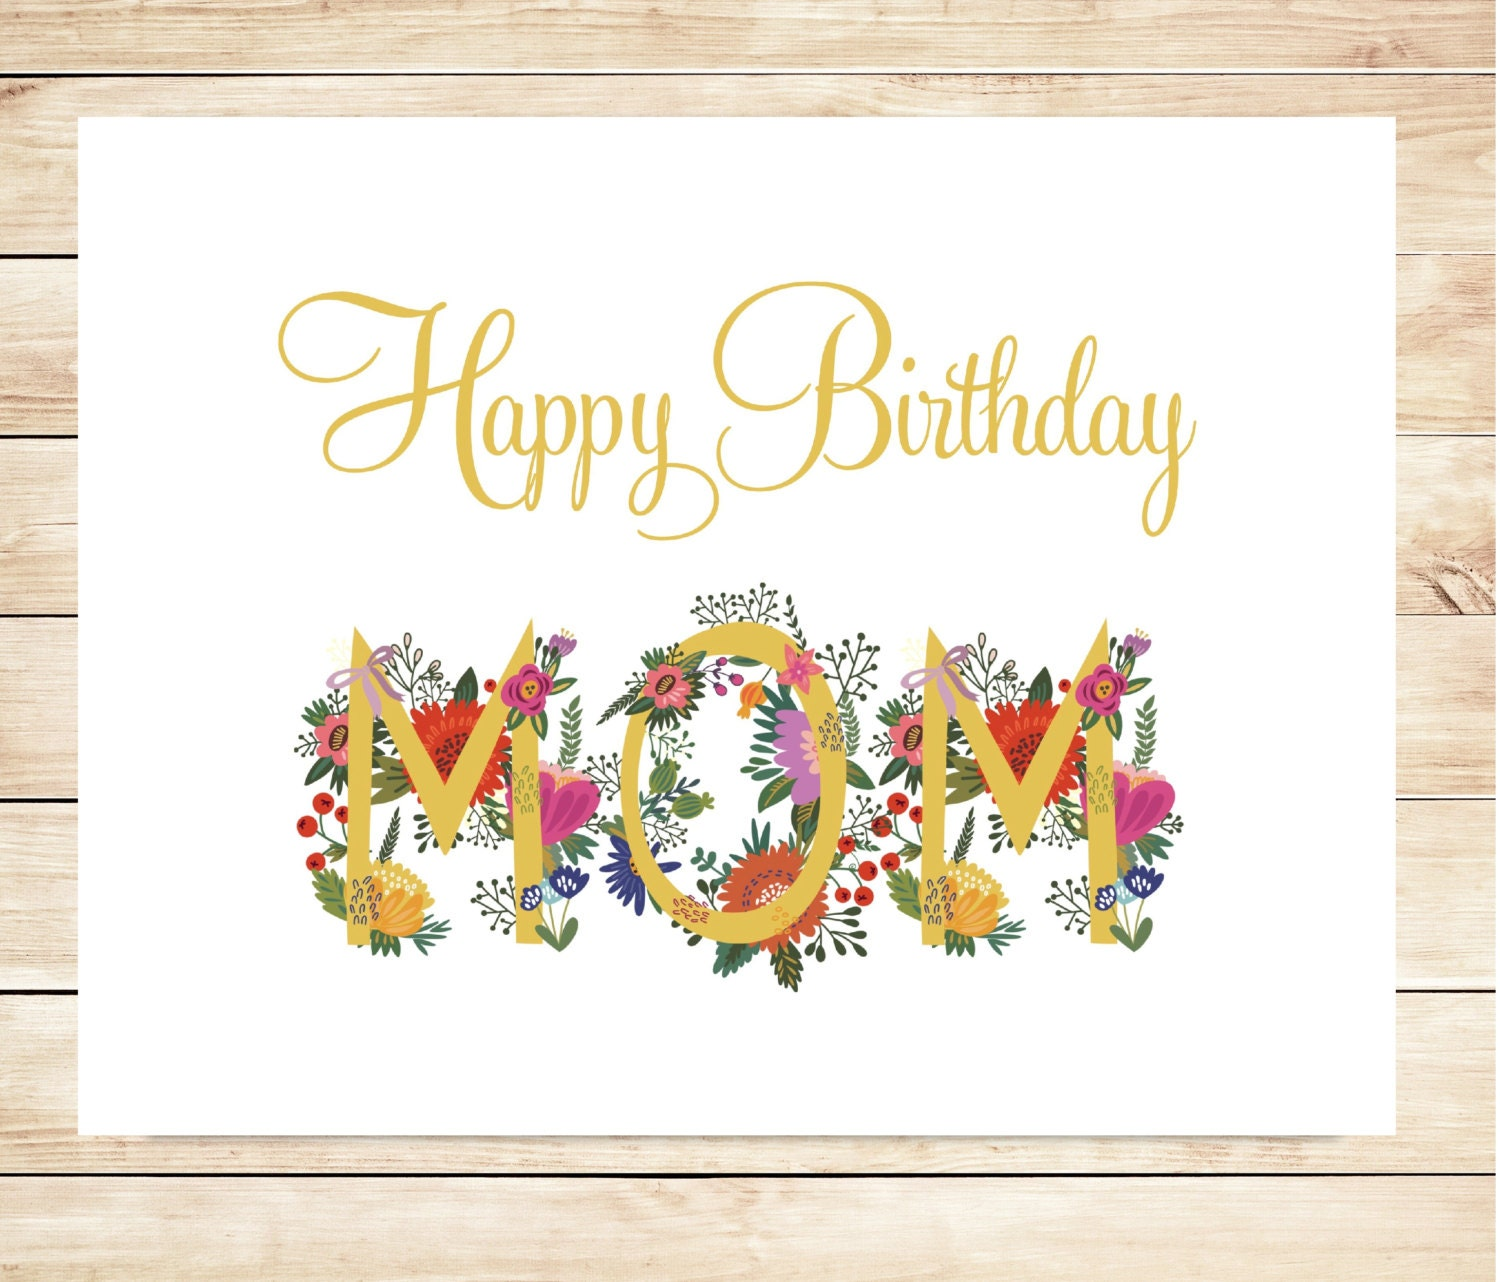 Sizzling image for printable birthday card for mom